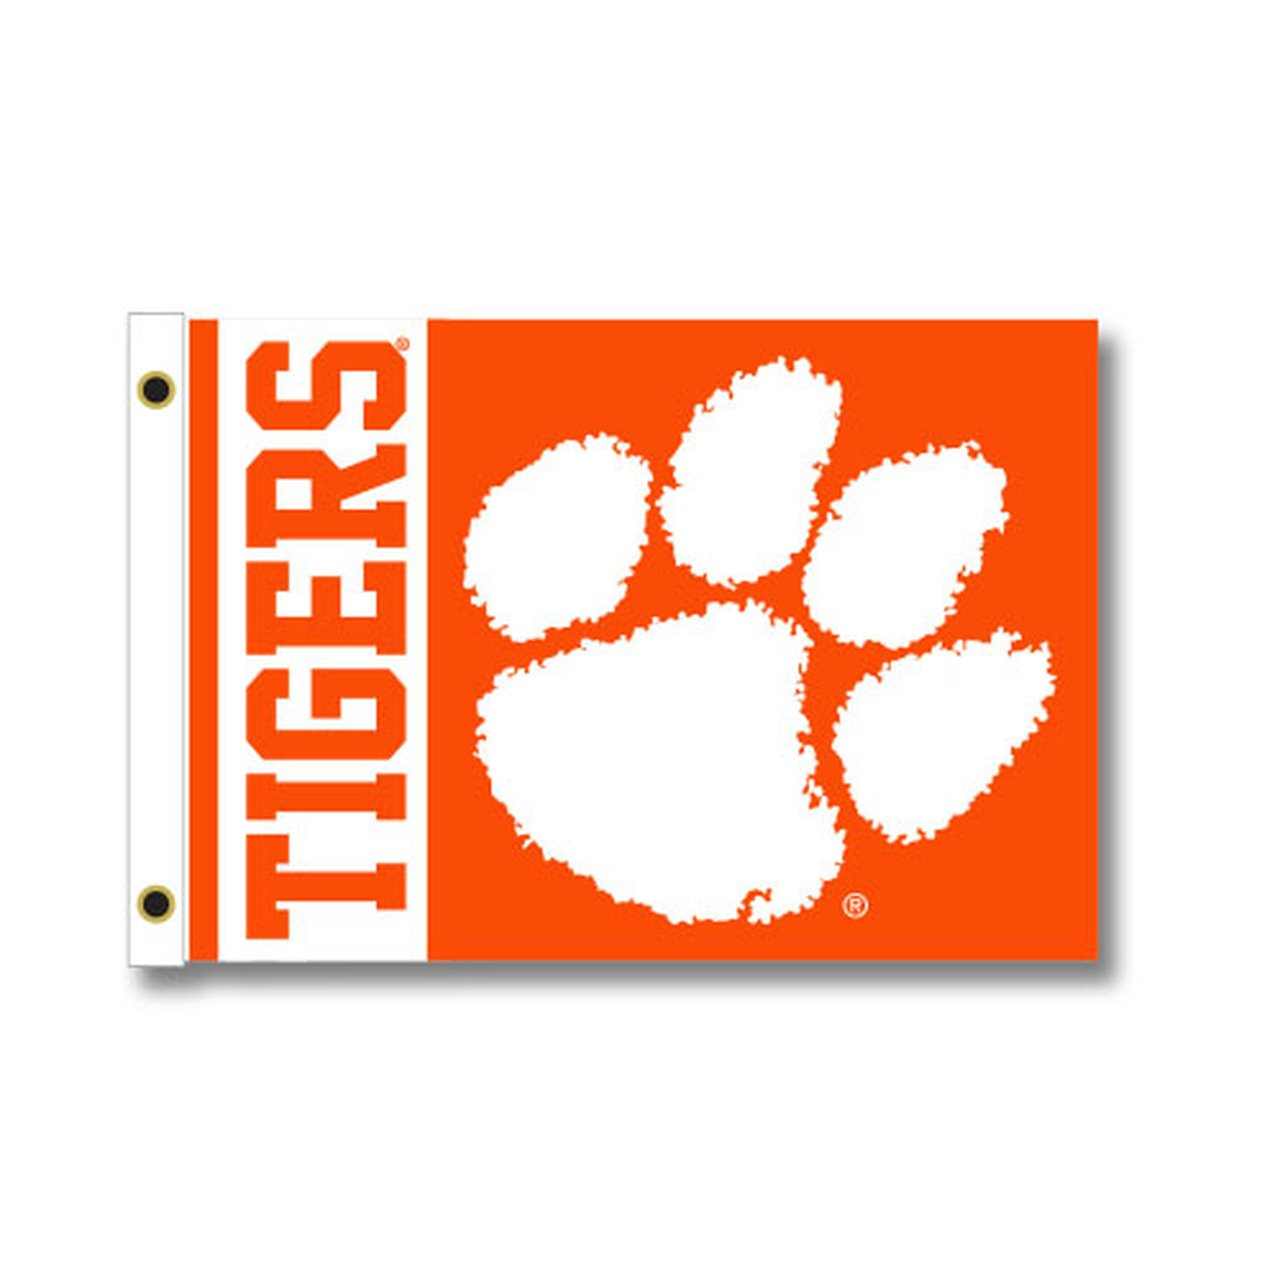 2 Sided Yard Flag 28''x40'' Orange With Tigers and White Paw - Mr. Knickerbocker